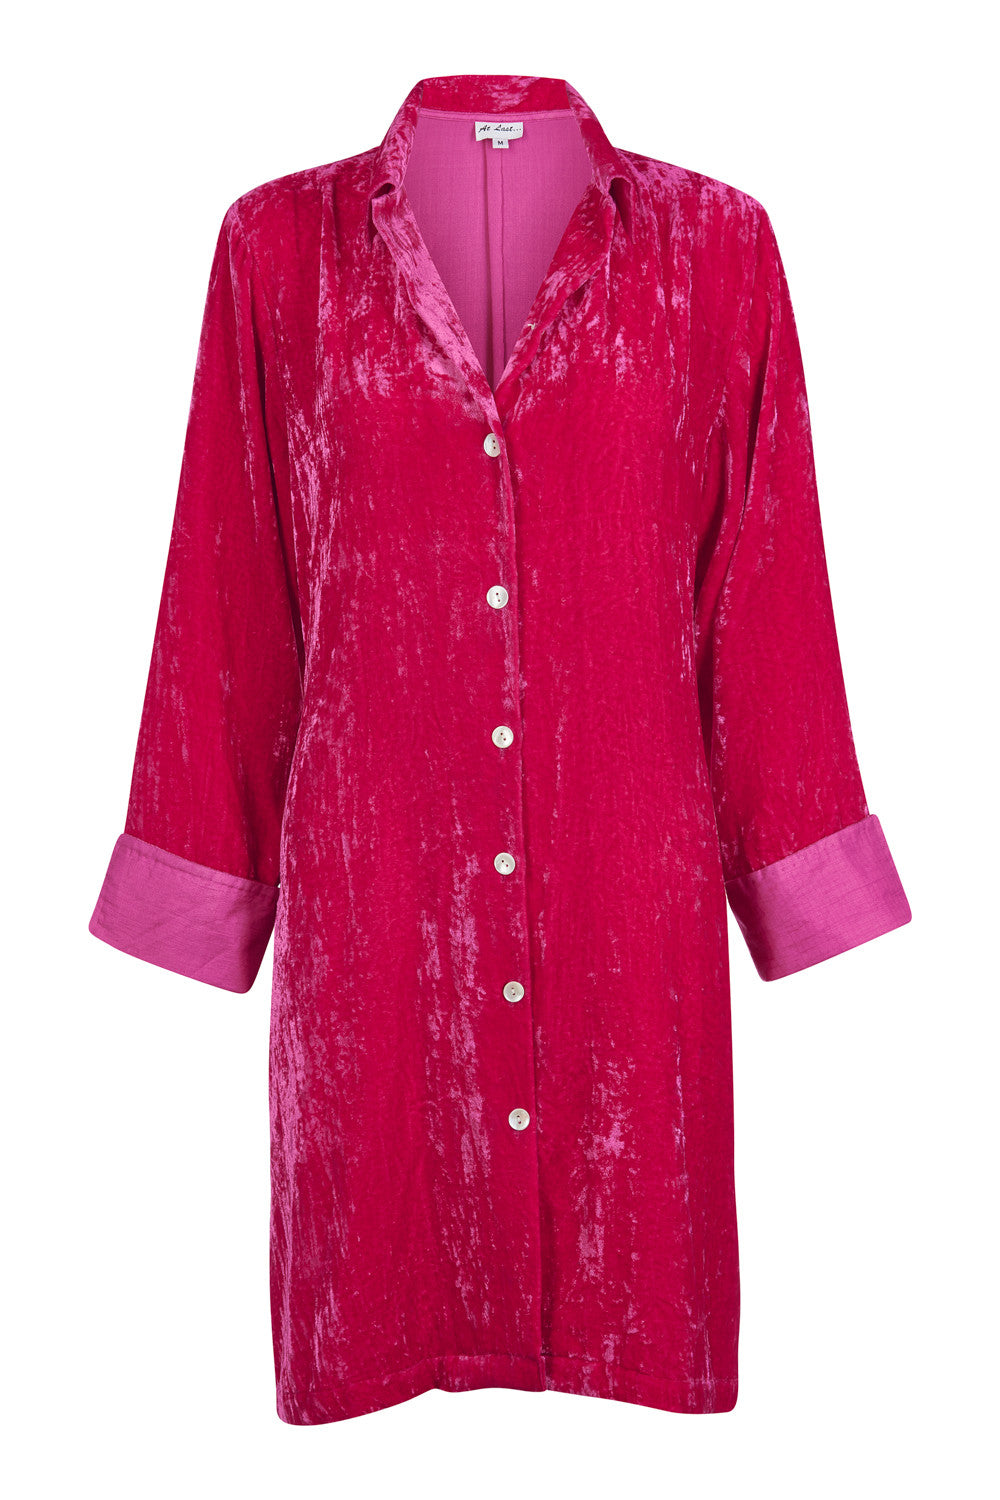 Amanda Silk Velvet Shirt (straight hem) - Hot Pink